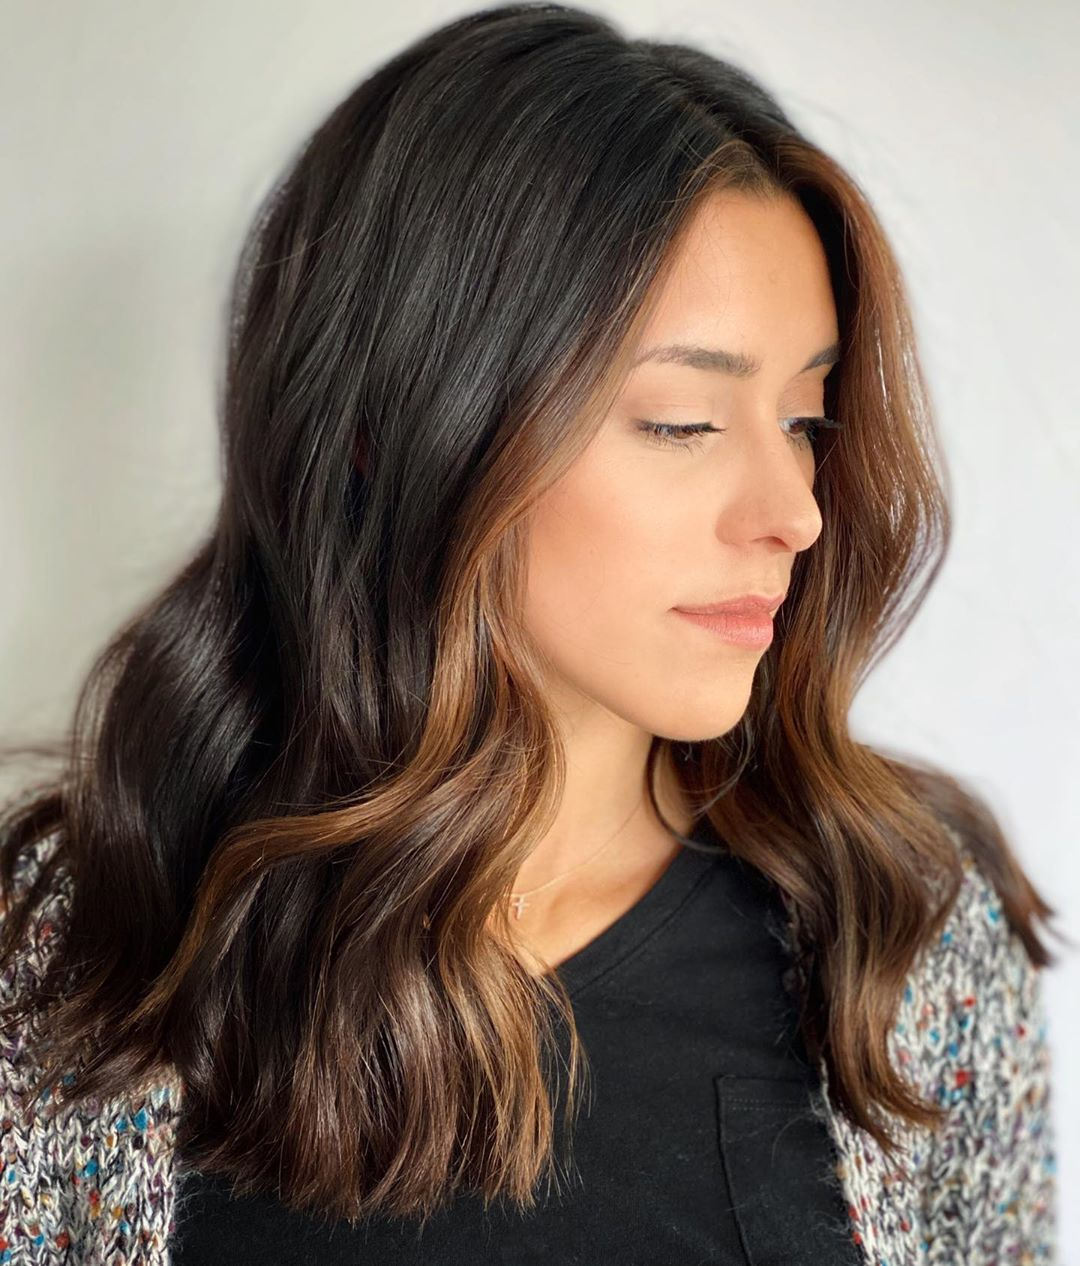 Brown Hair with Face-Framing Highlights